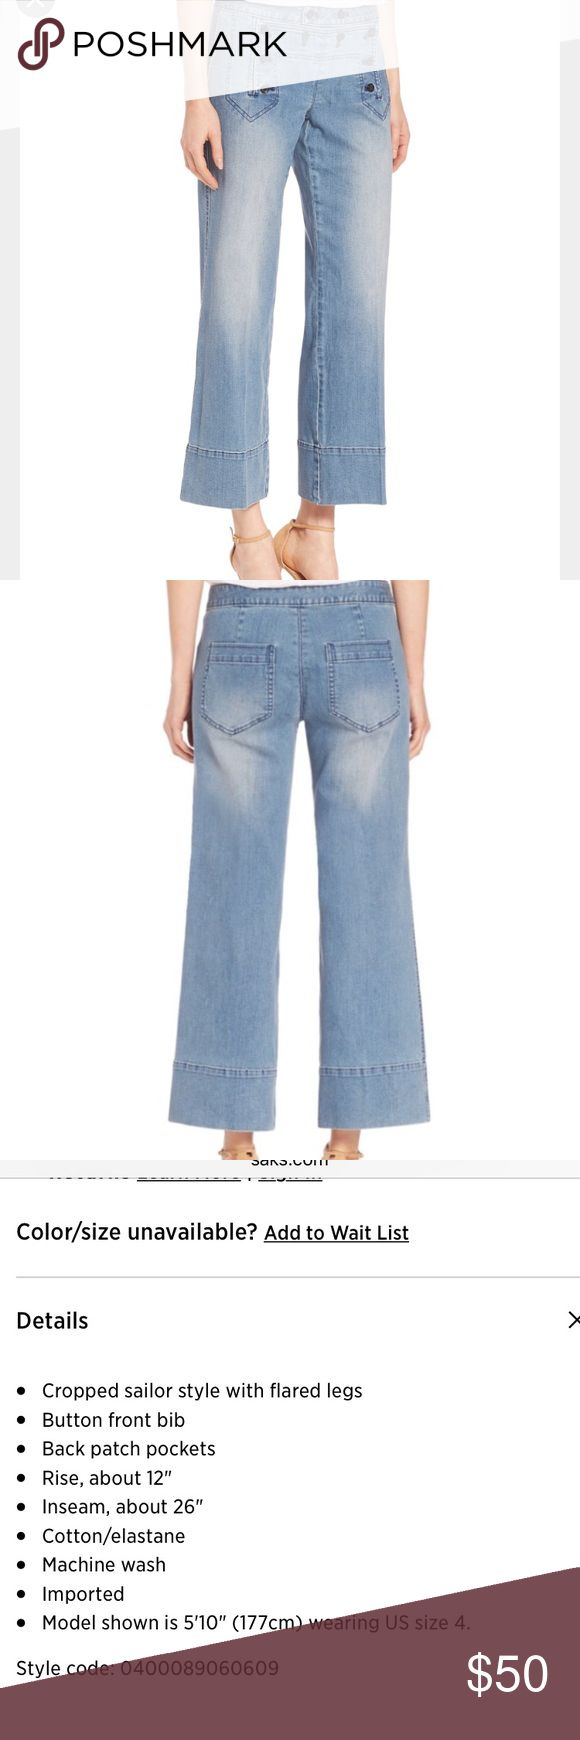 NWT Michael Kors Cropped Sailor Jeans Super cute Cropped Flare jeans from Michael Kors with nautical elements. Looks killer with heels, but also pairs well with sandals or flats. Michael Kors Jeans